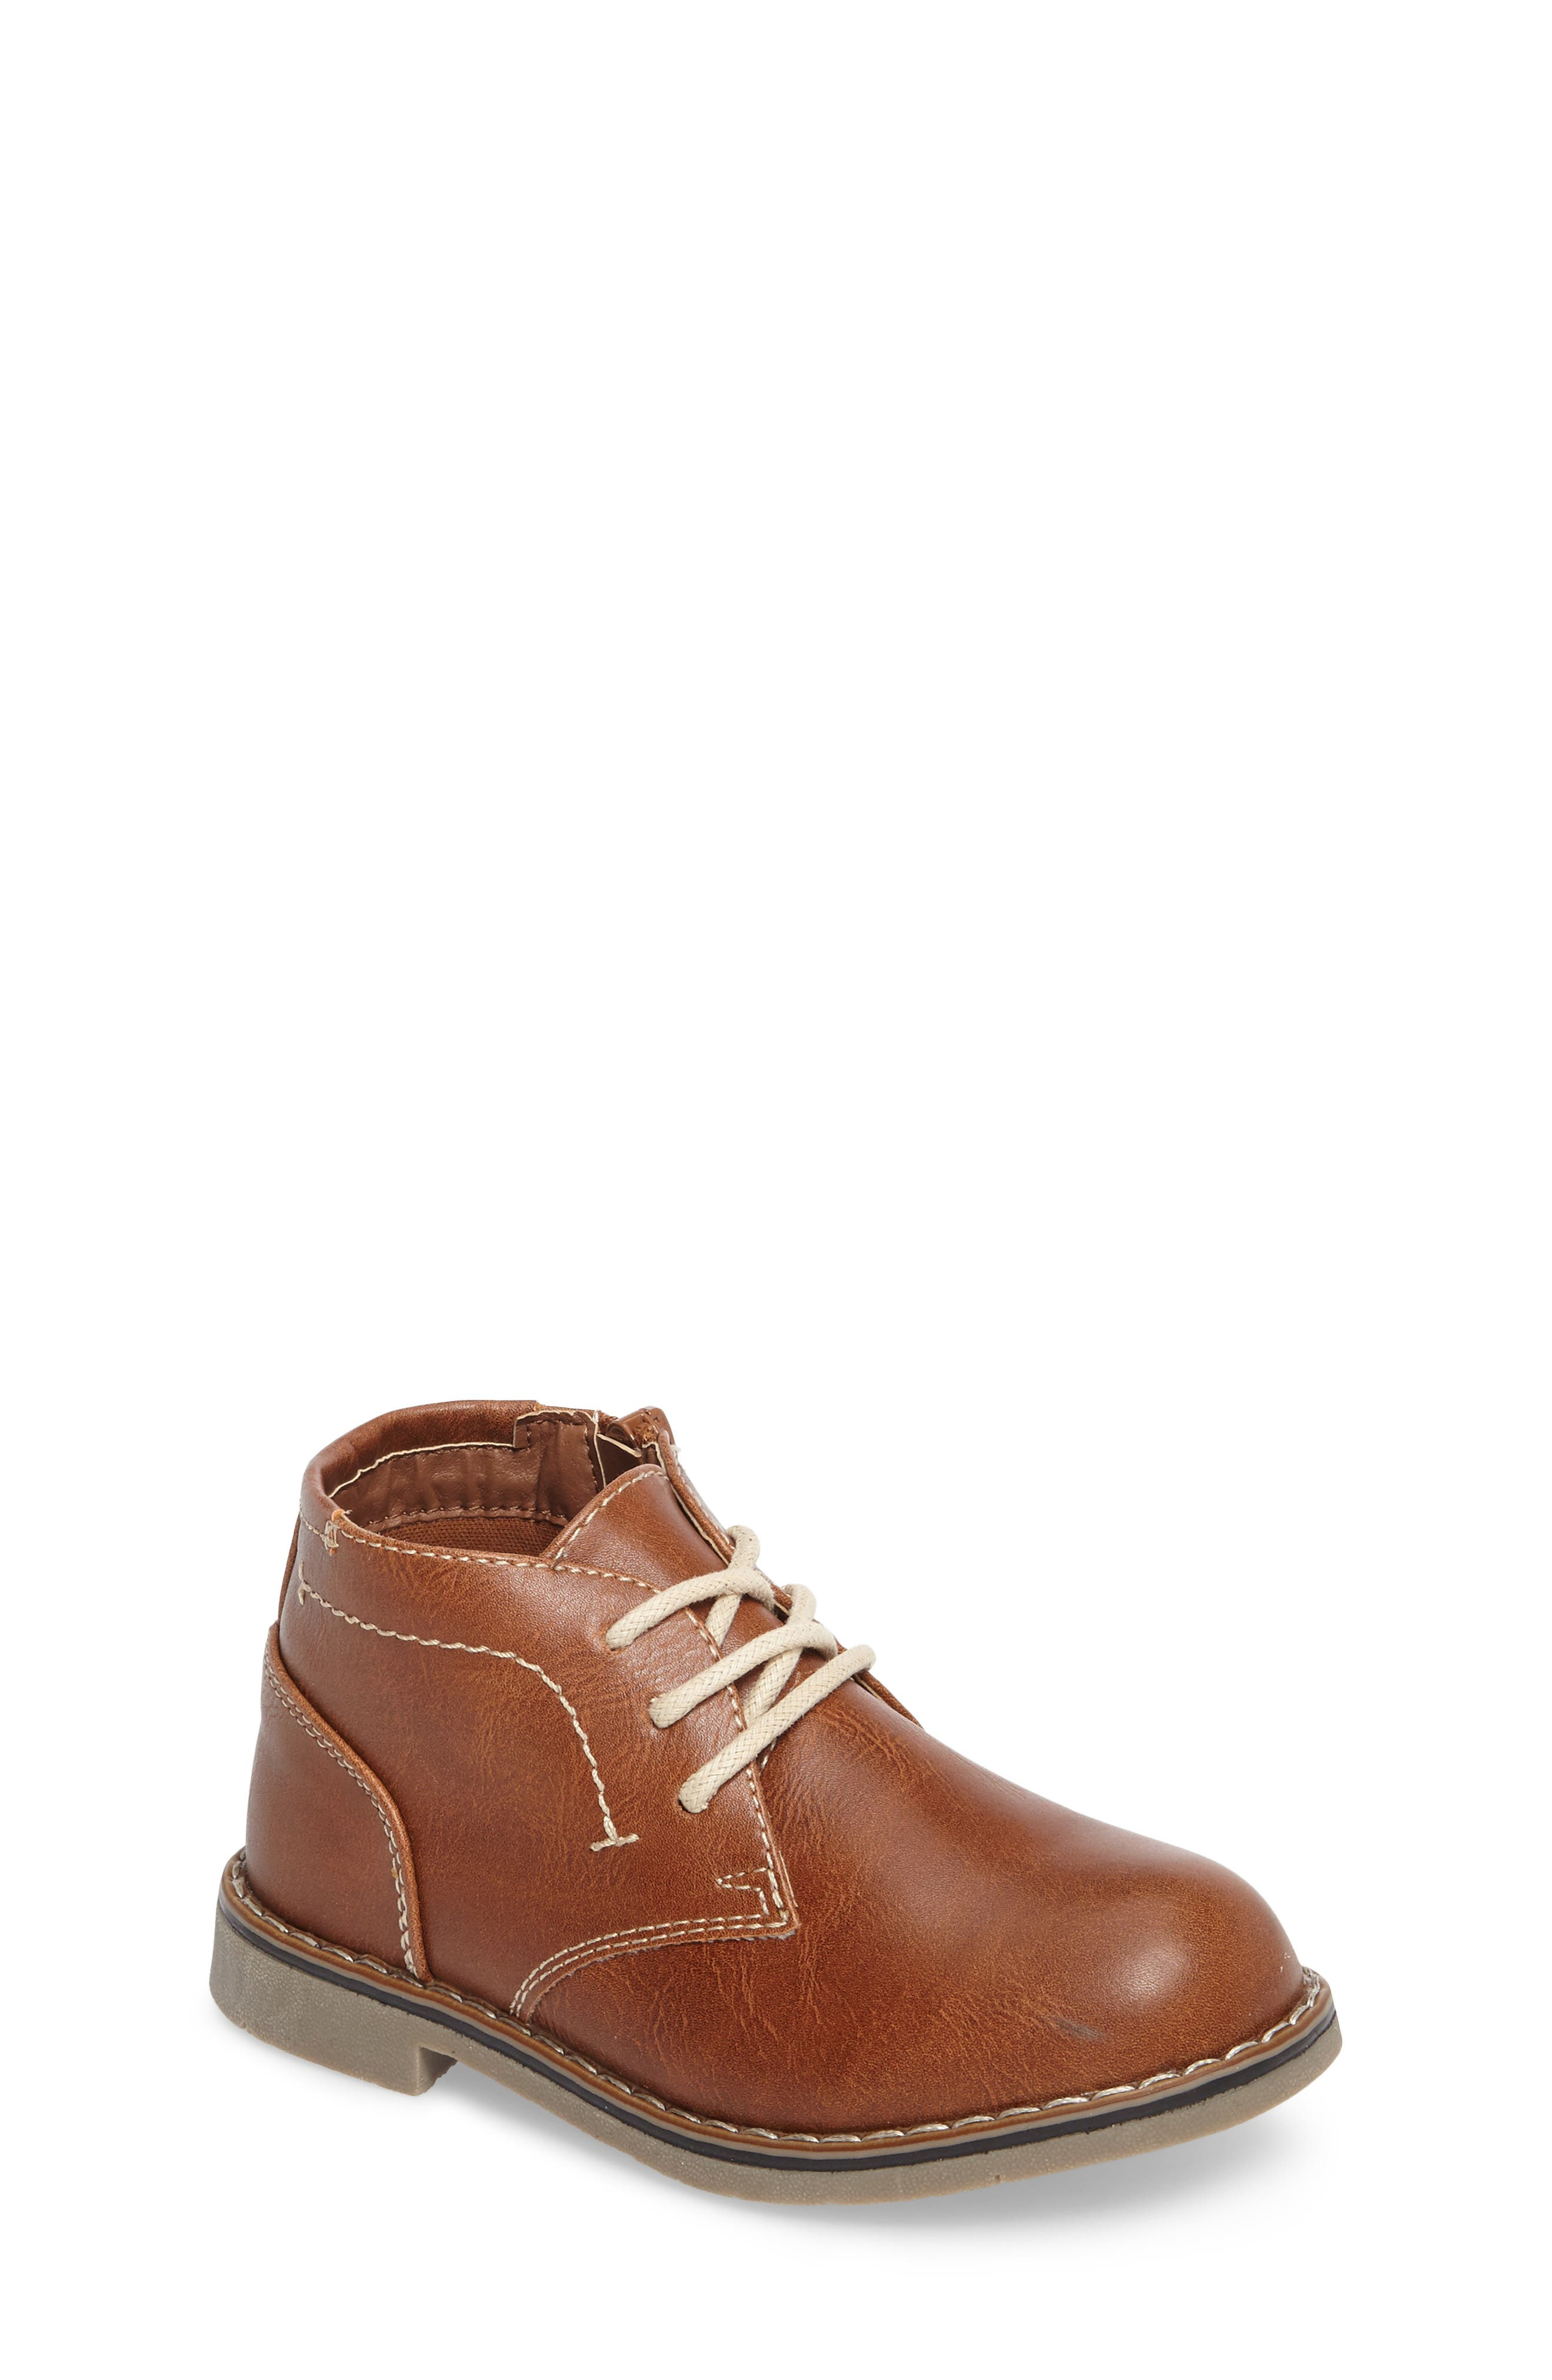 Chukka Boot,                             Main thumbnail 1, color,                             Cognac